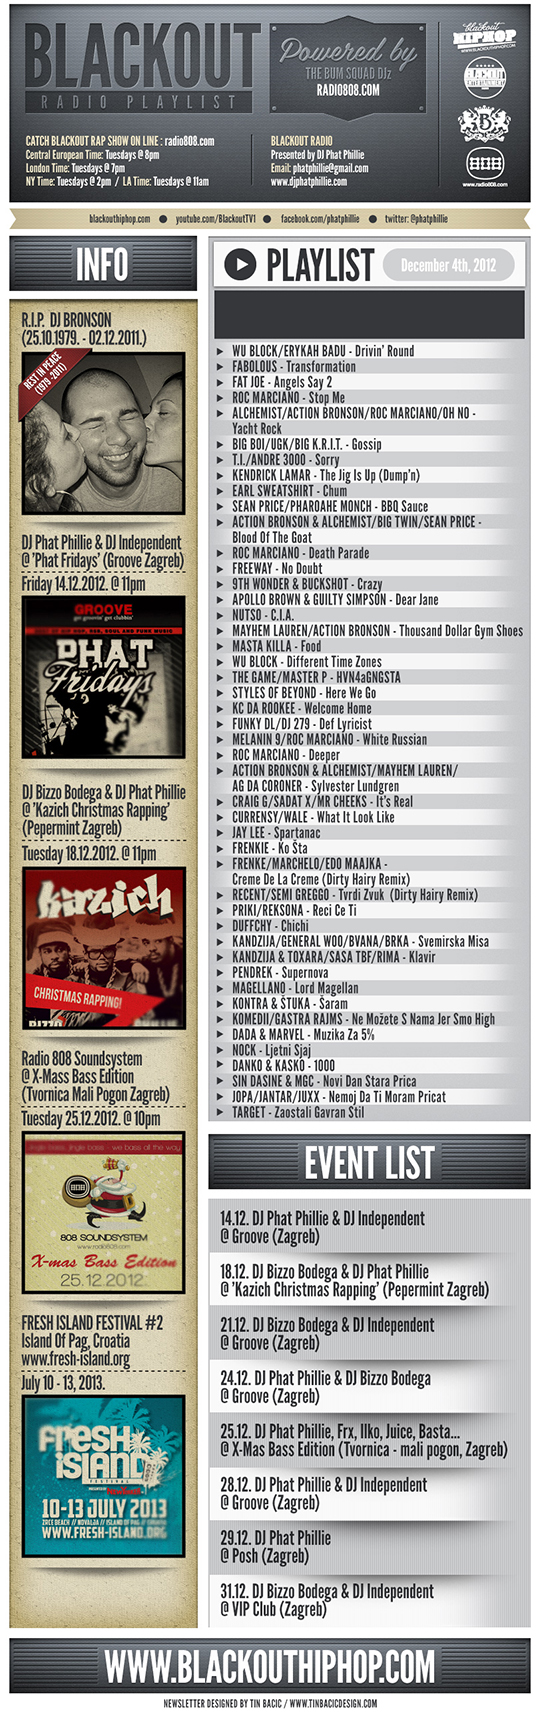 PLAYLIST 4 12 Blackout Radio Playlist & DL Links (Dec 4th, 2012)